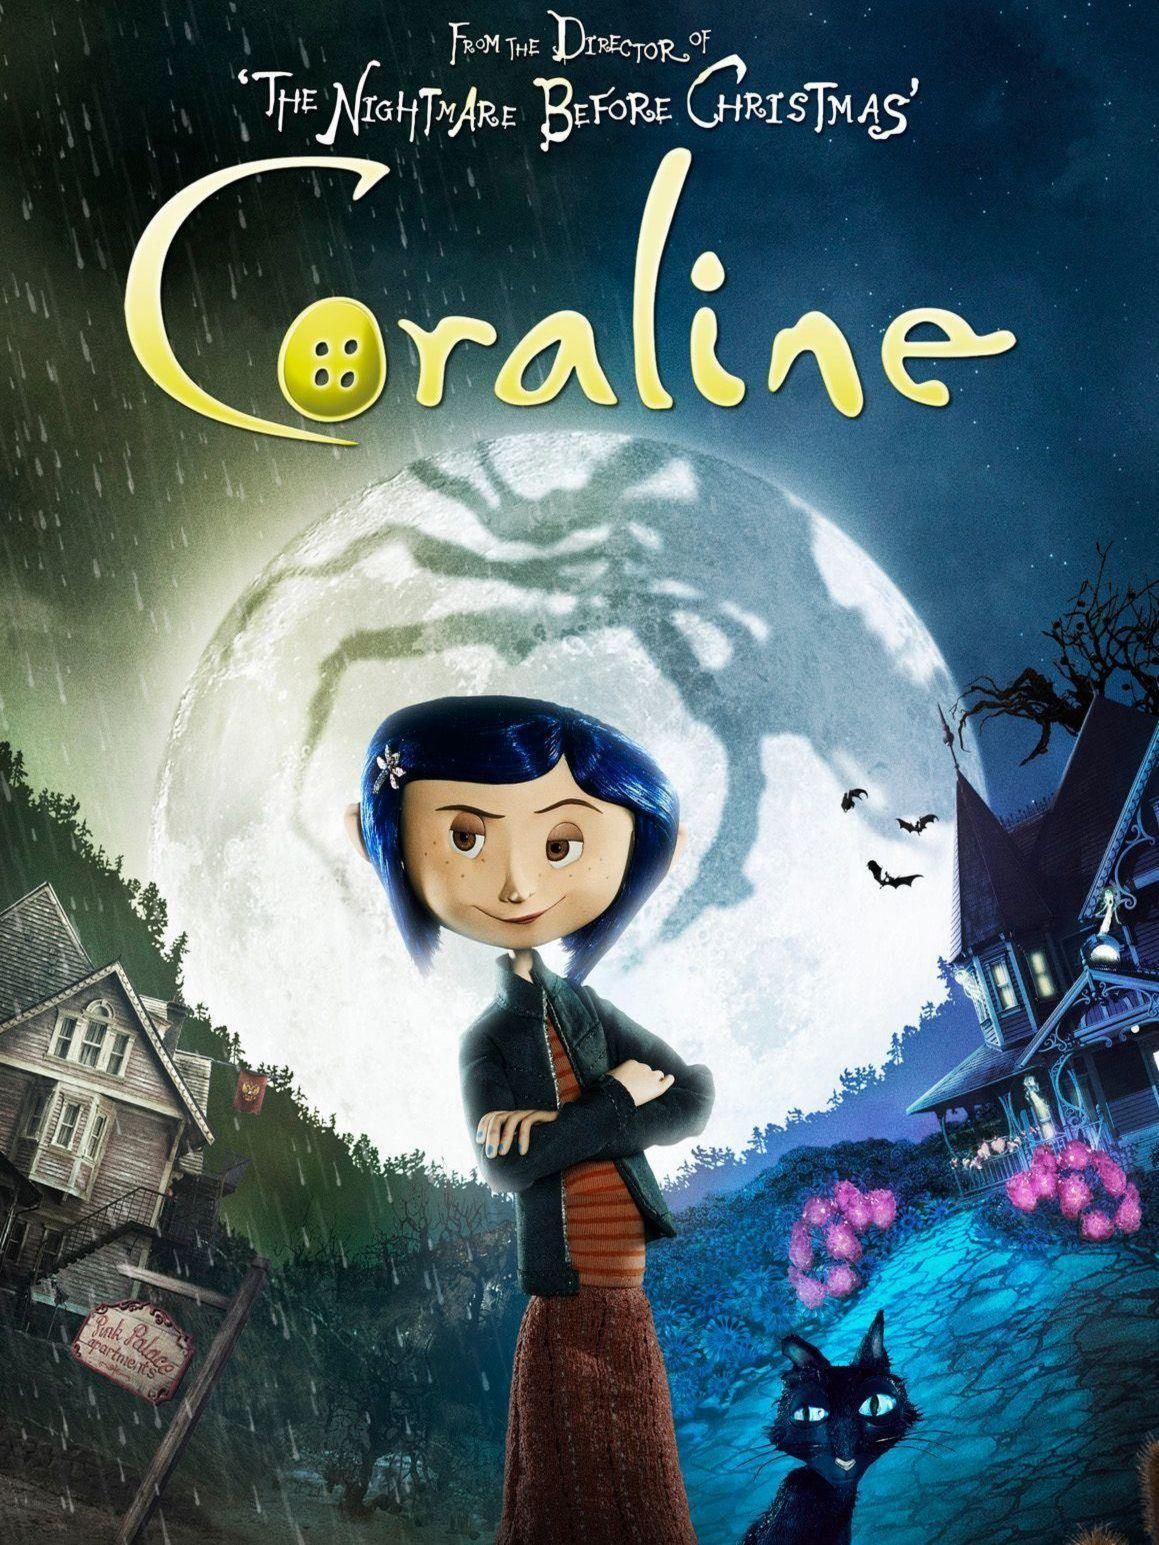 What character from Coroline are you? Coraline movie